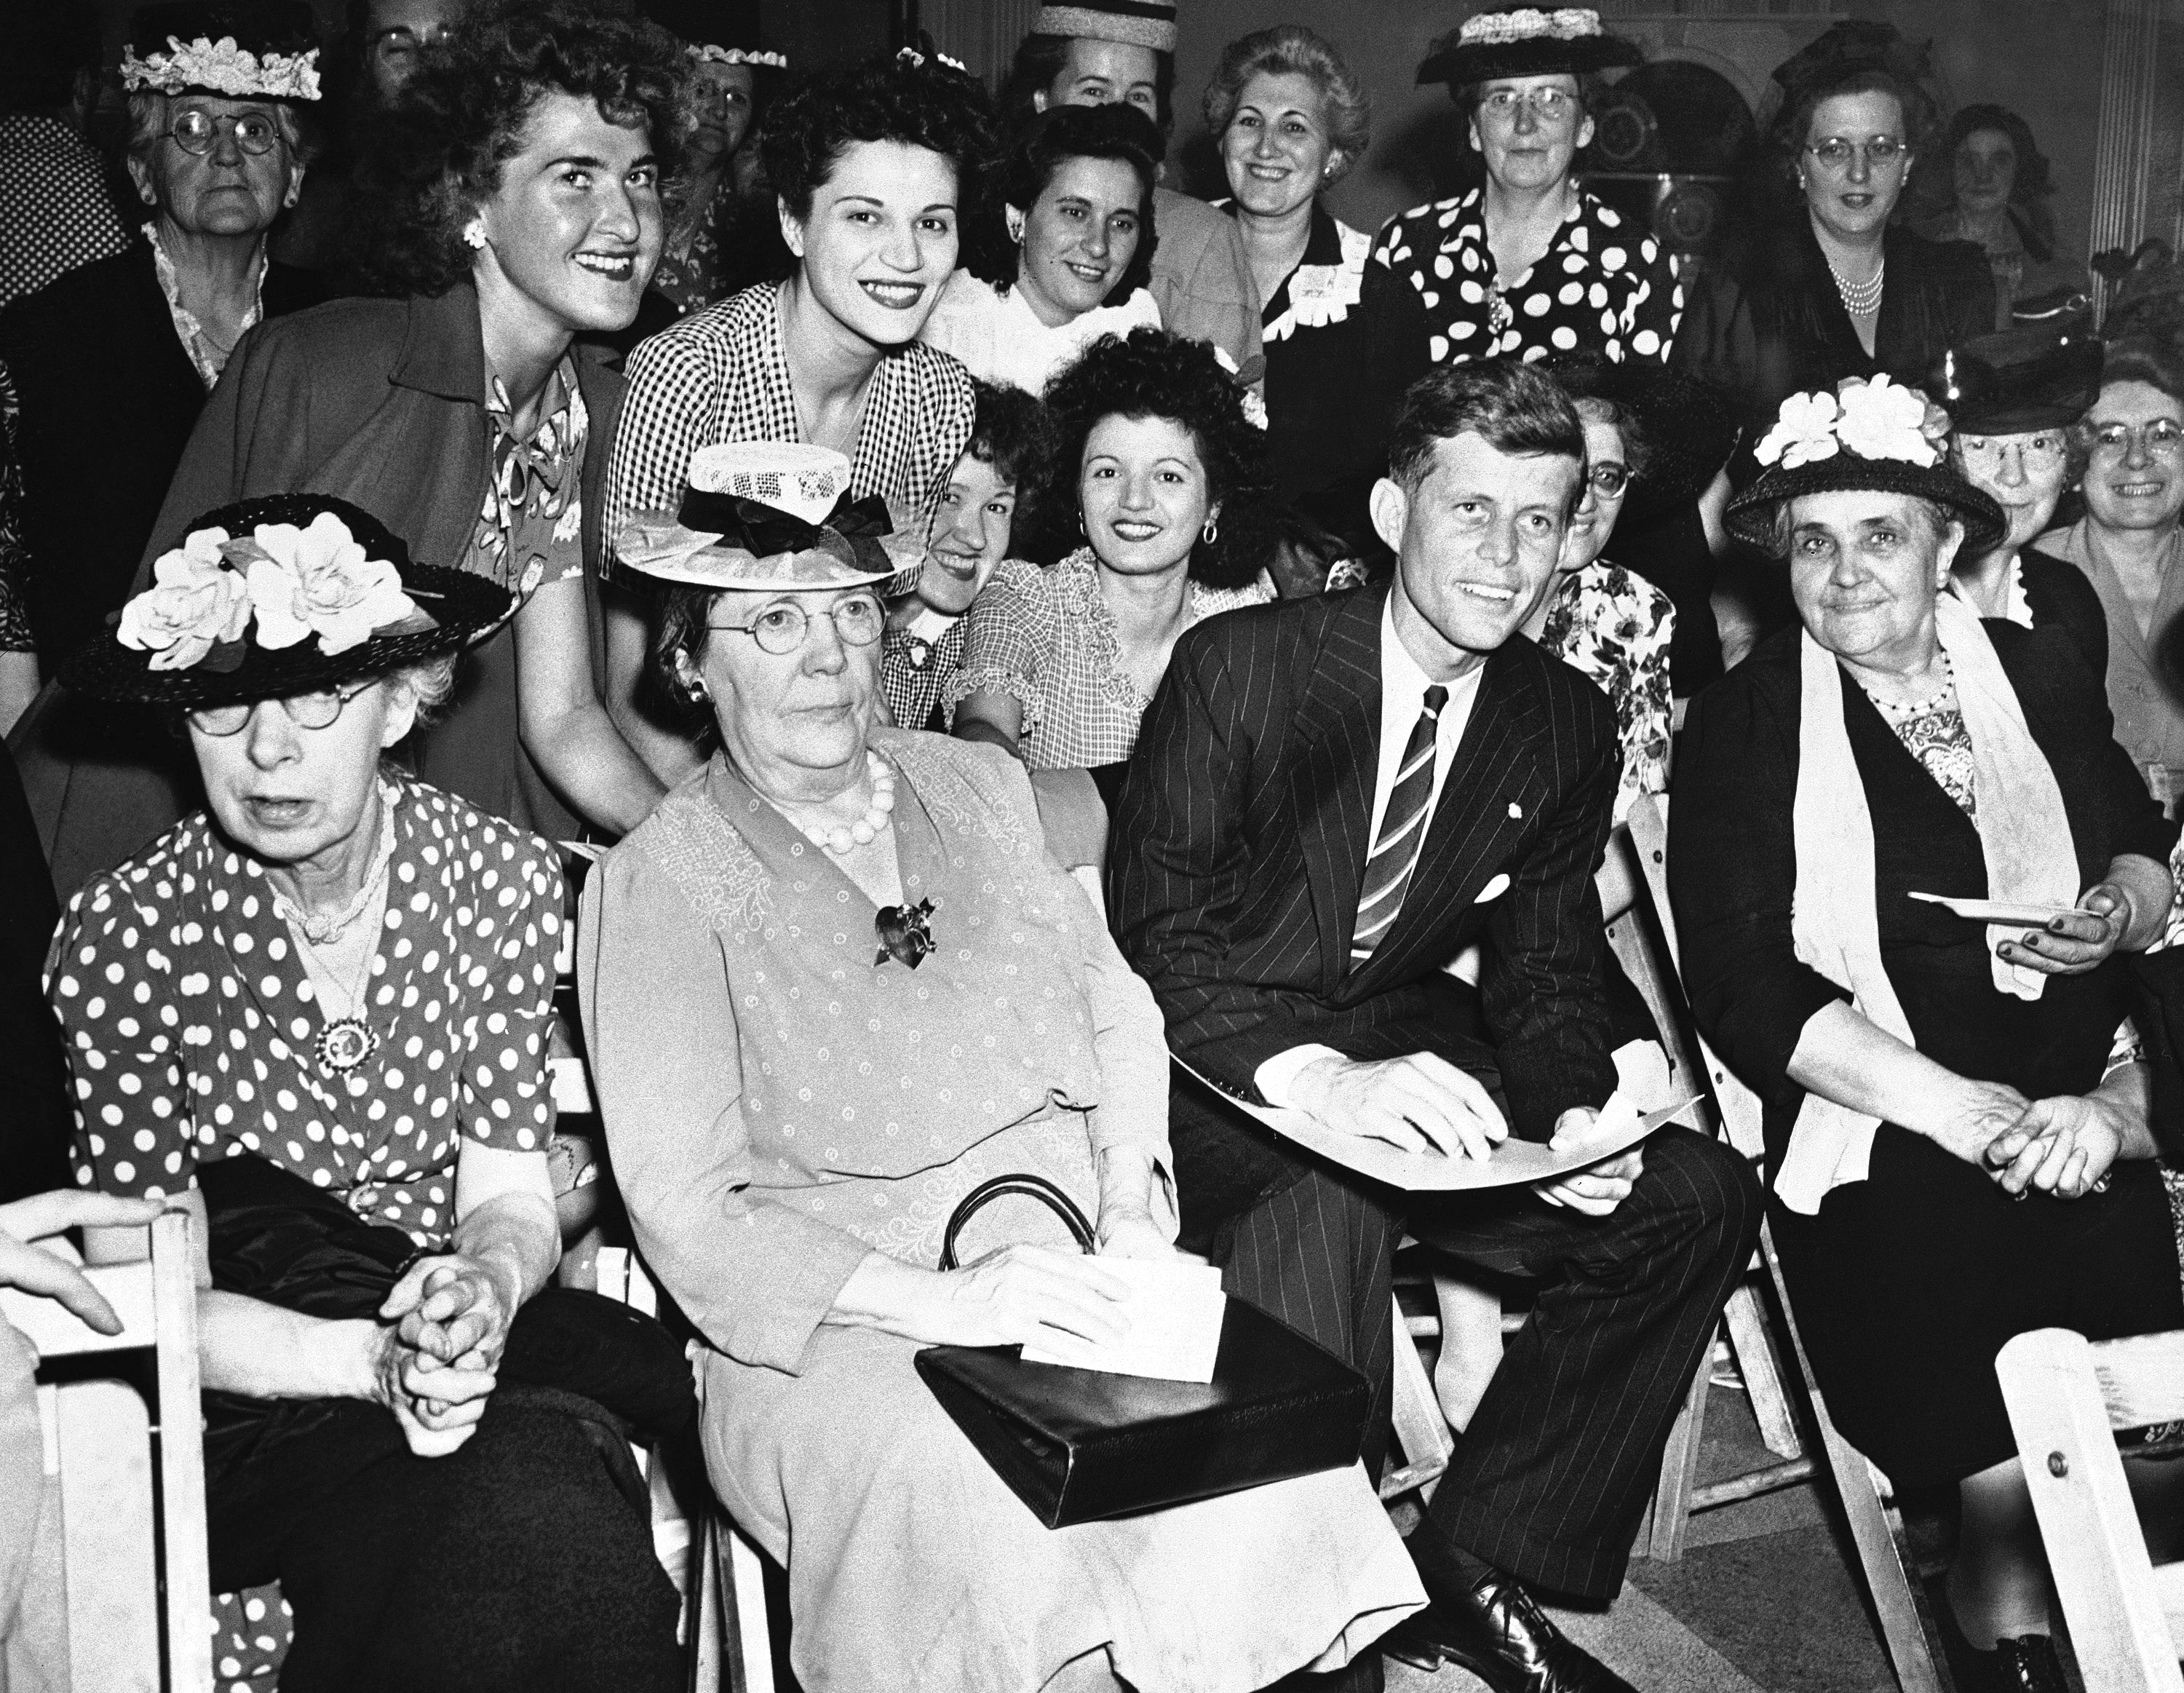 <div class='meta'><div class='origin-logo' data-origin='none'></div><span class='caption-text' data-credit='ASSOCIATED PRESS'>John F. Kennedy surrounded by women voters during his first campaign for congress in 1946.</span></div>